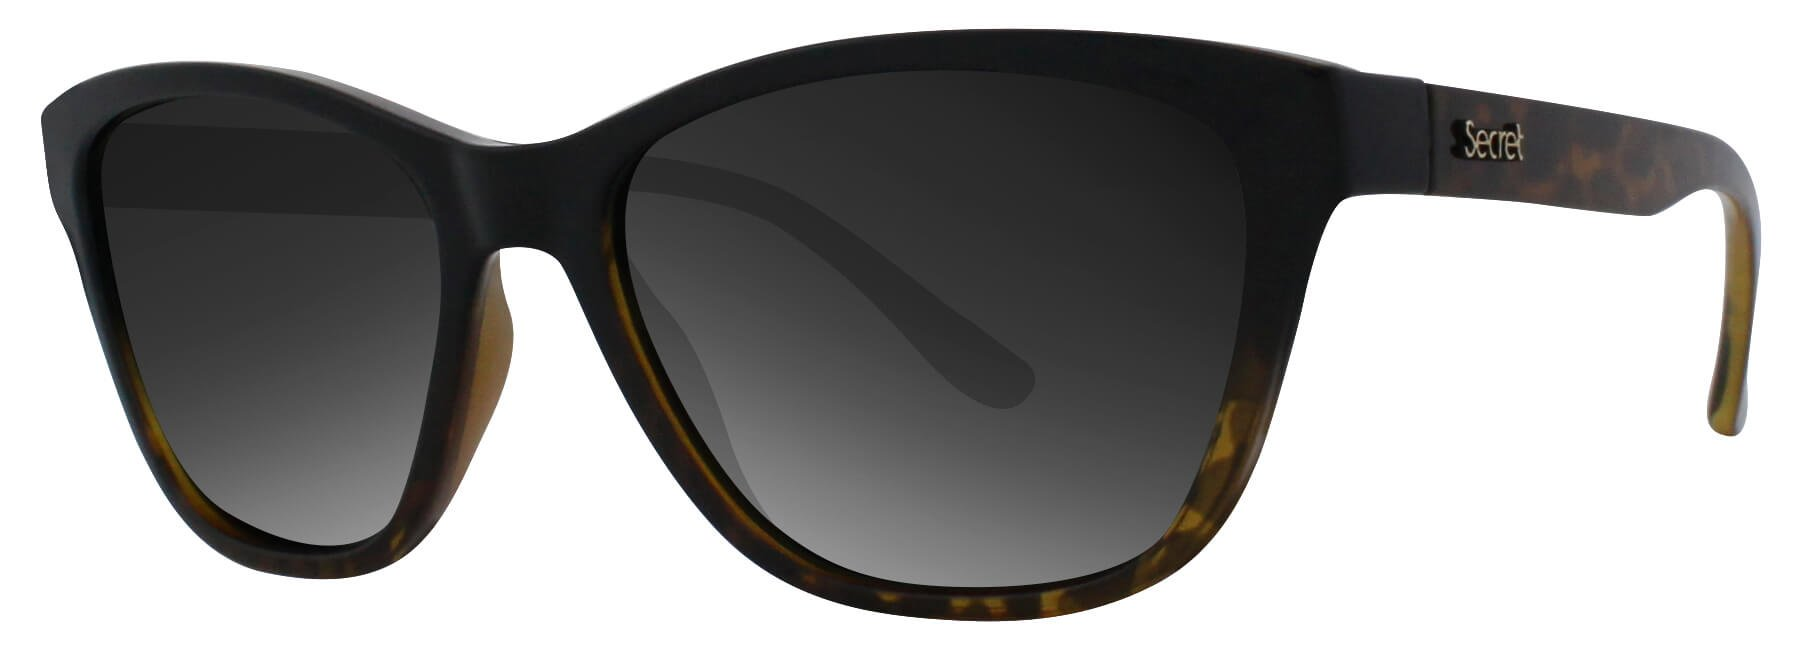 ÓC SECRET NARA FADE BLACK/TURTLE / POLARIZED GRADIENT BROWN